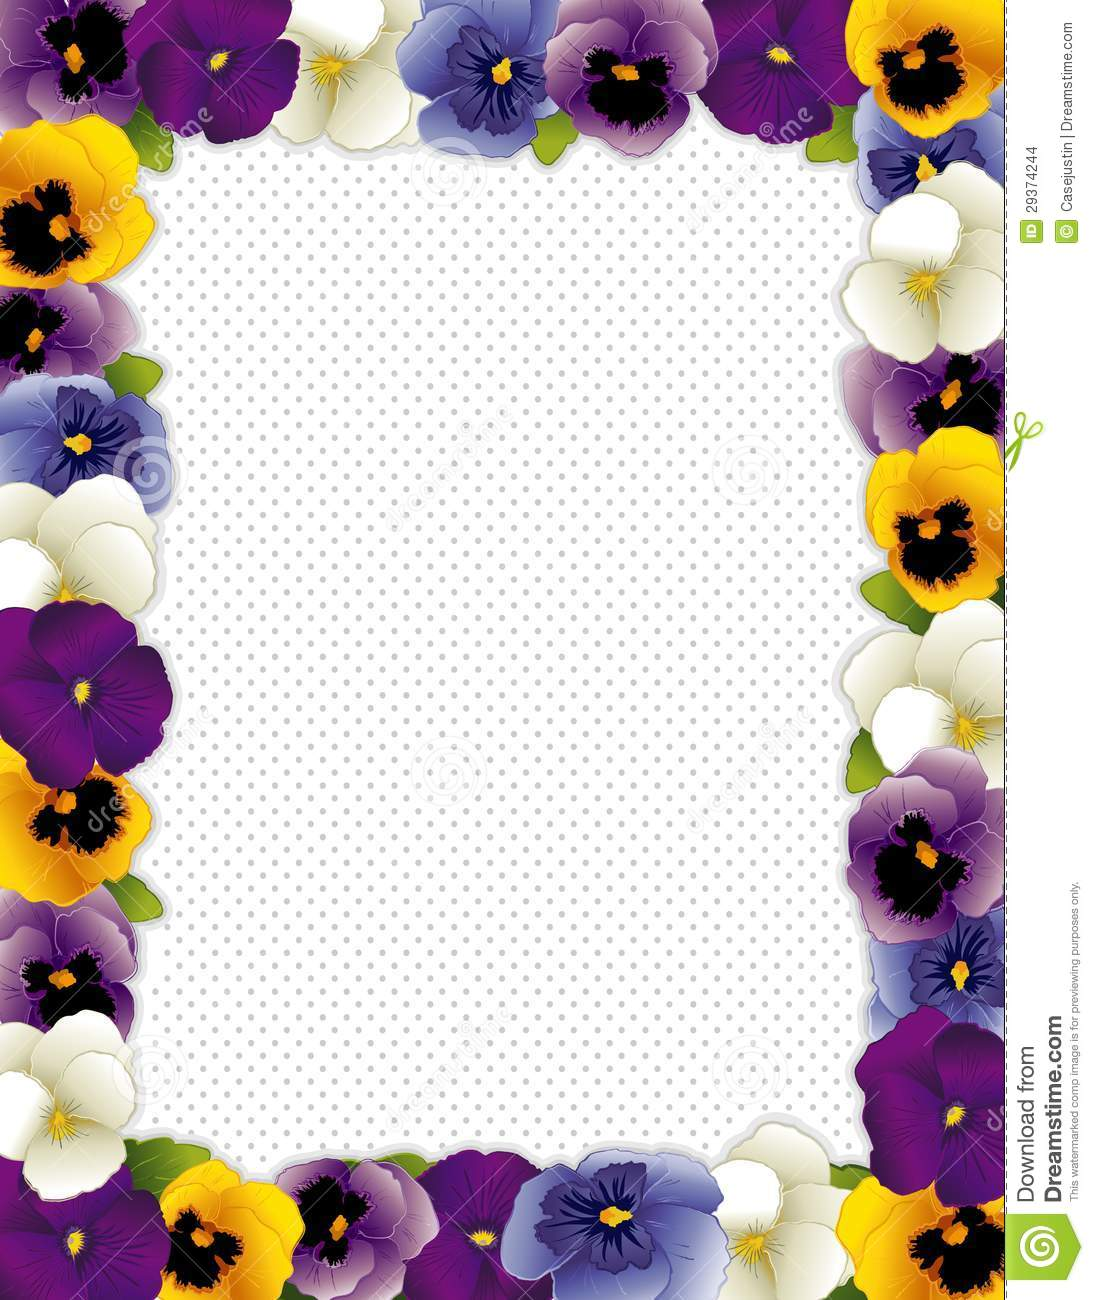 frame, polka dot background. Violas in lavender, purple, blue and gold ...